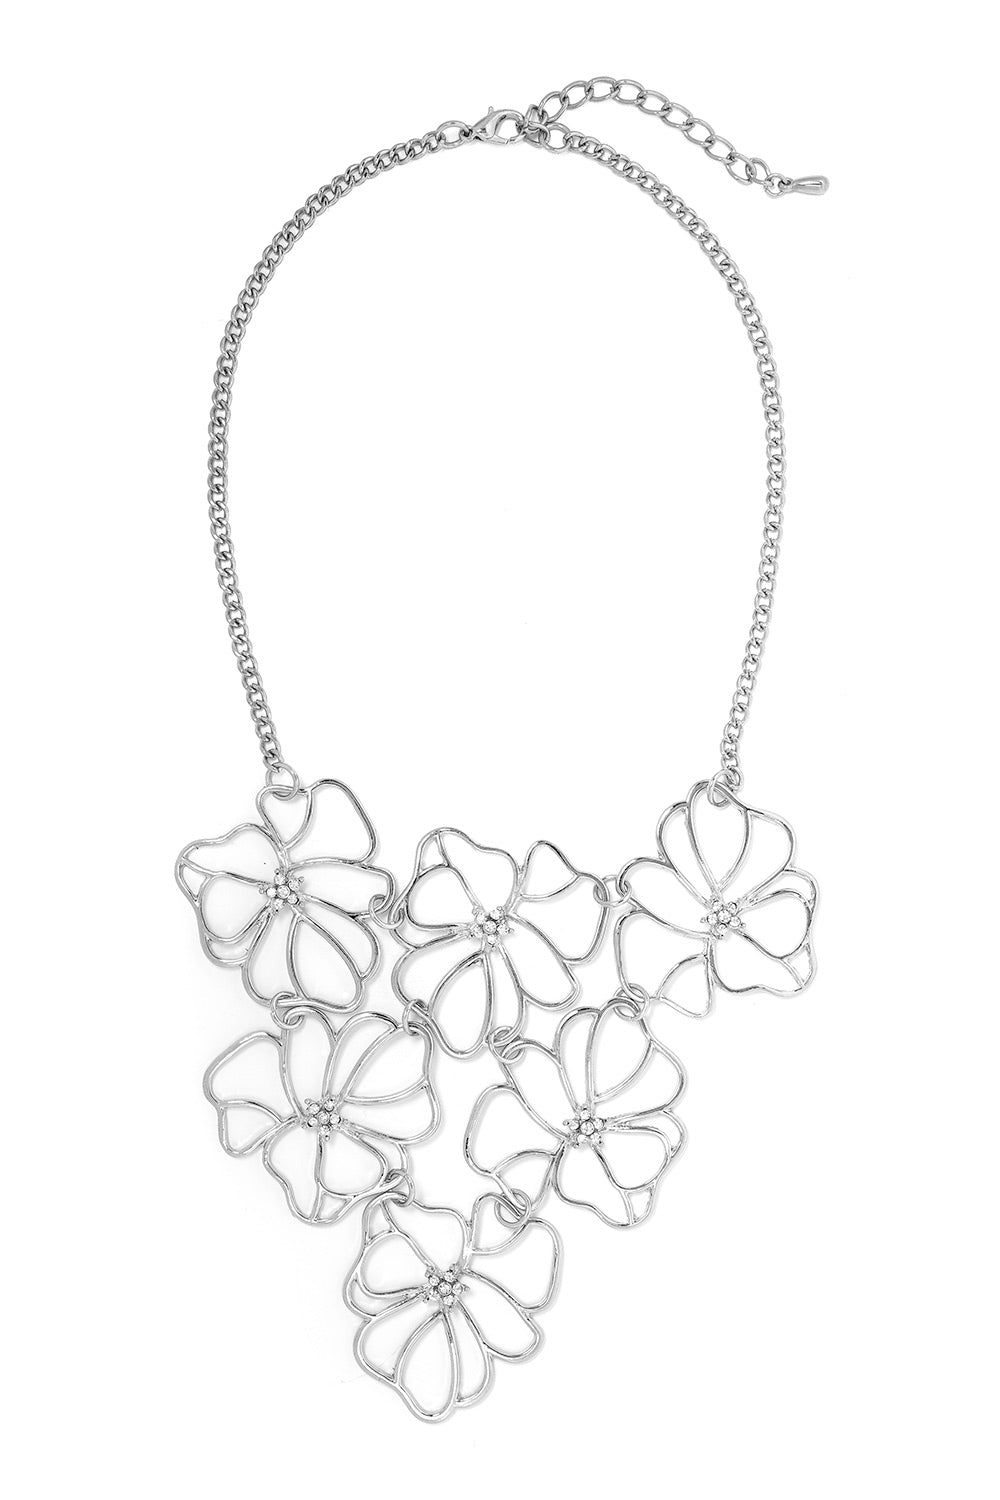 Type 4 Flower Tower Necklace